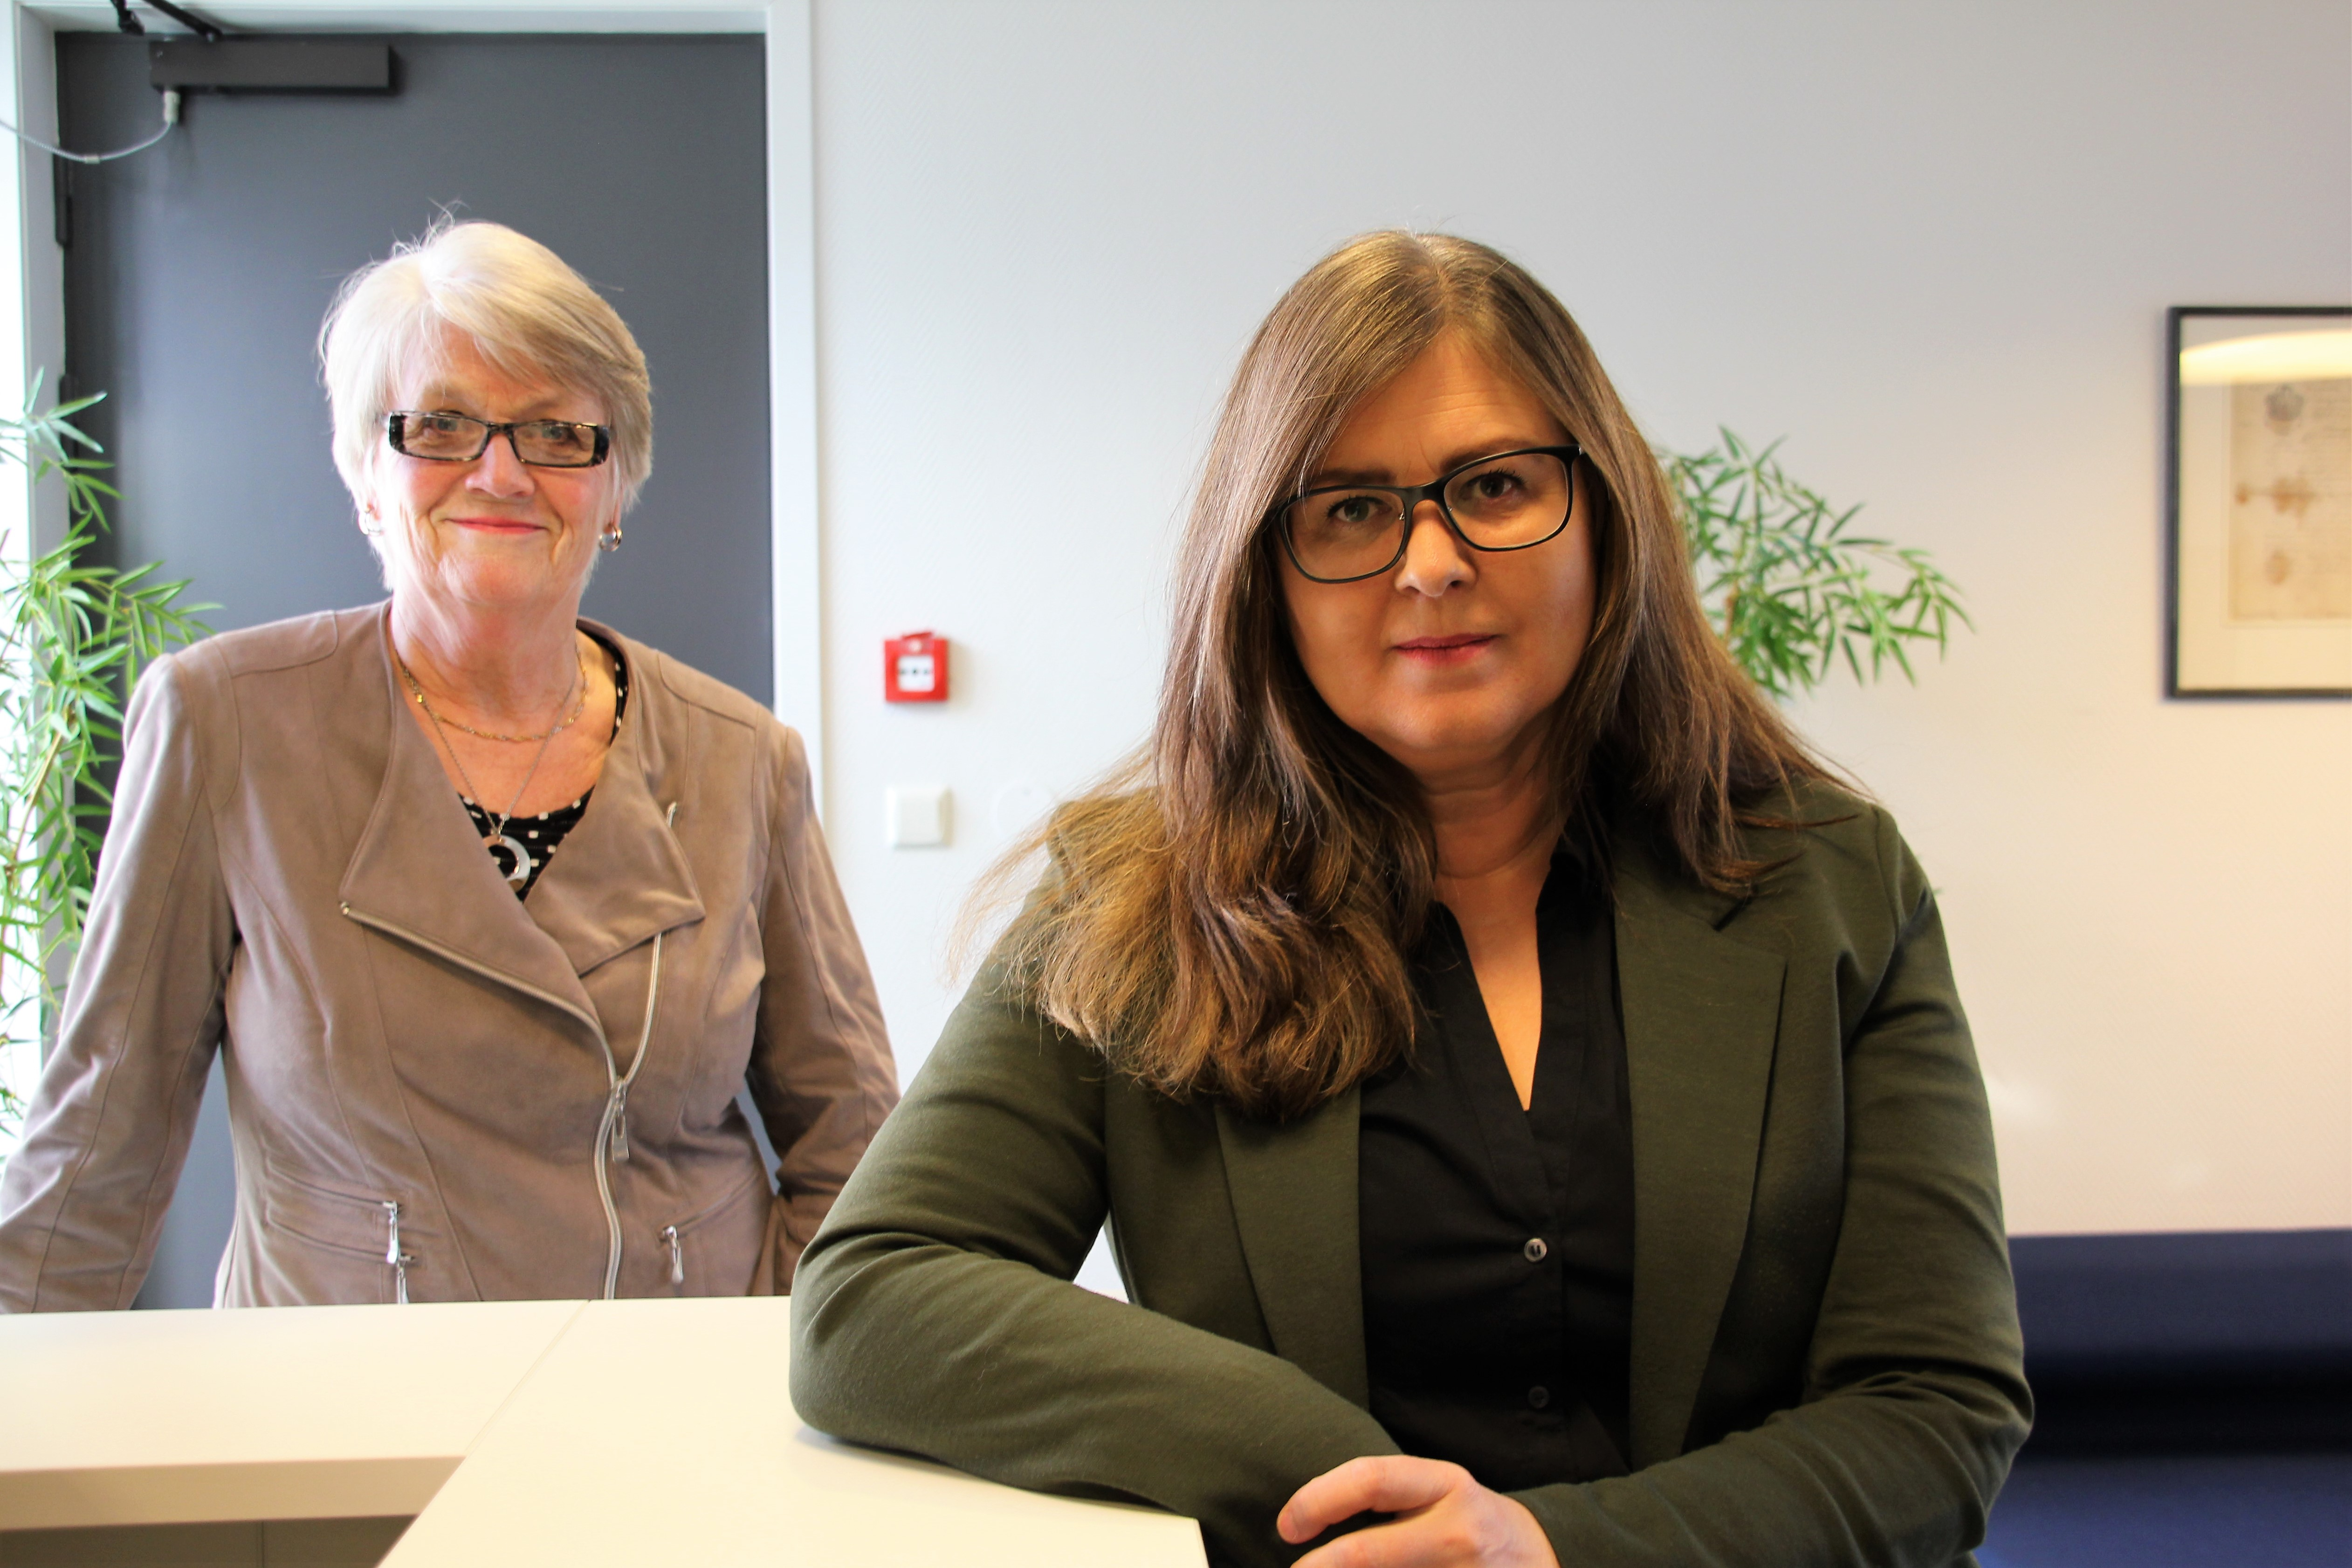 The picture shows to women, Anita Malmedal and Monika Borge, standing by a desk, smiling.